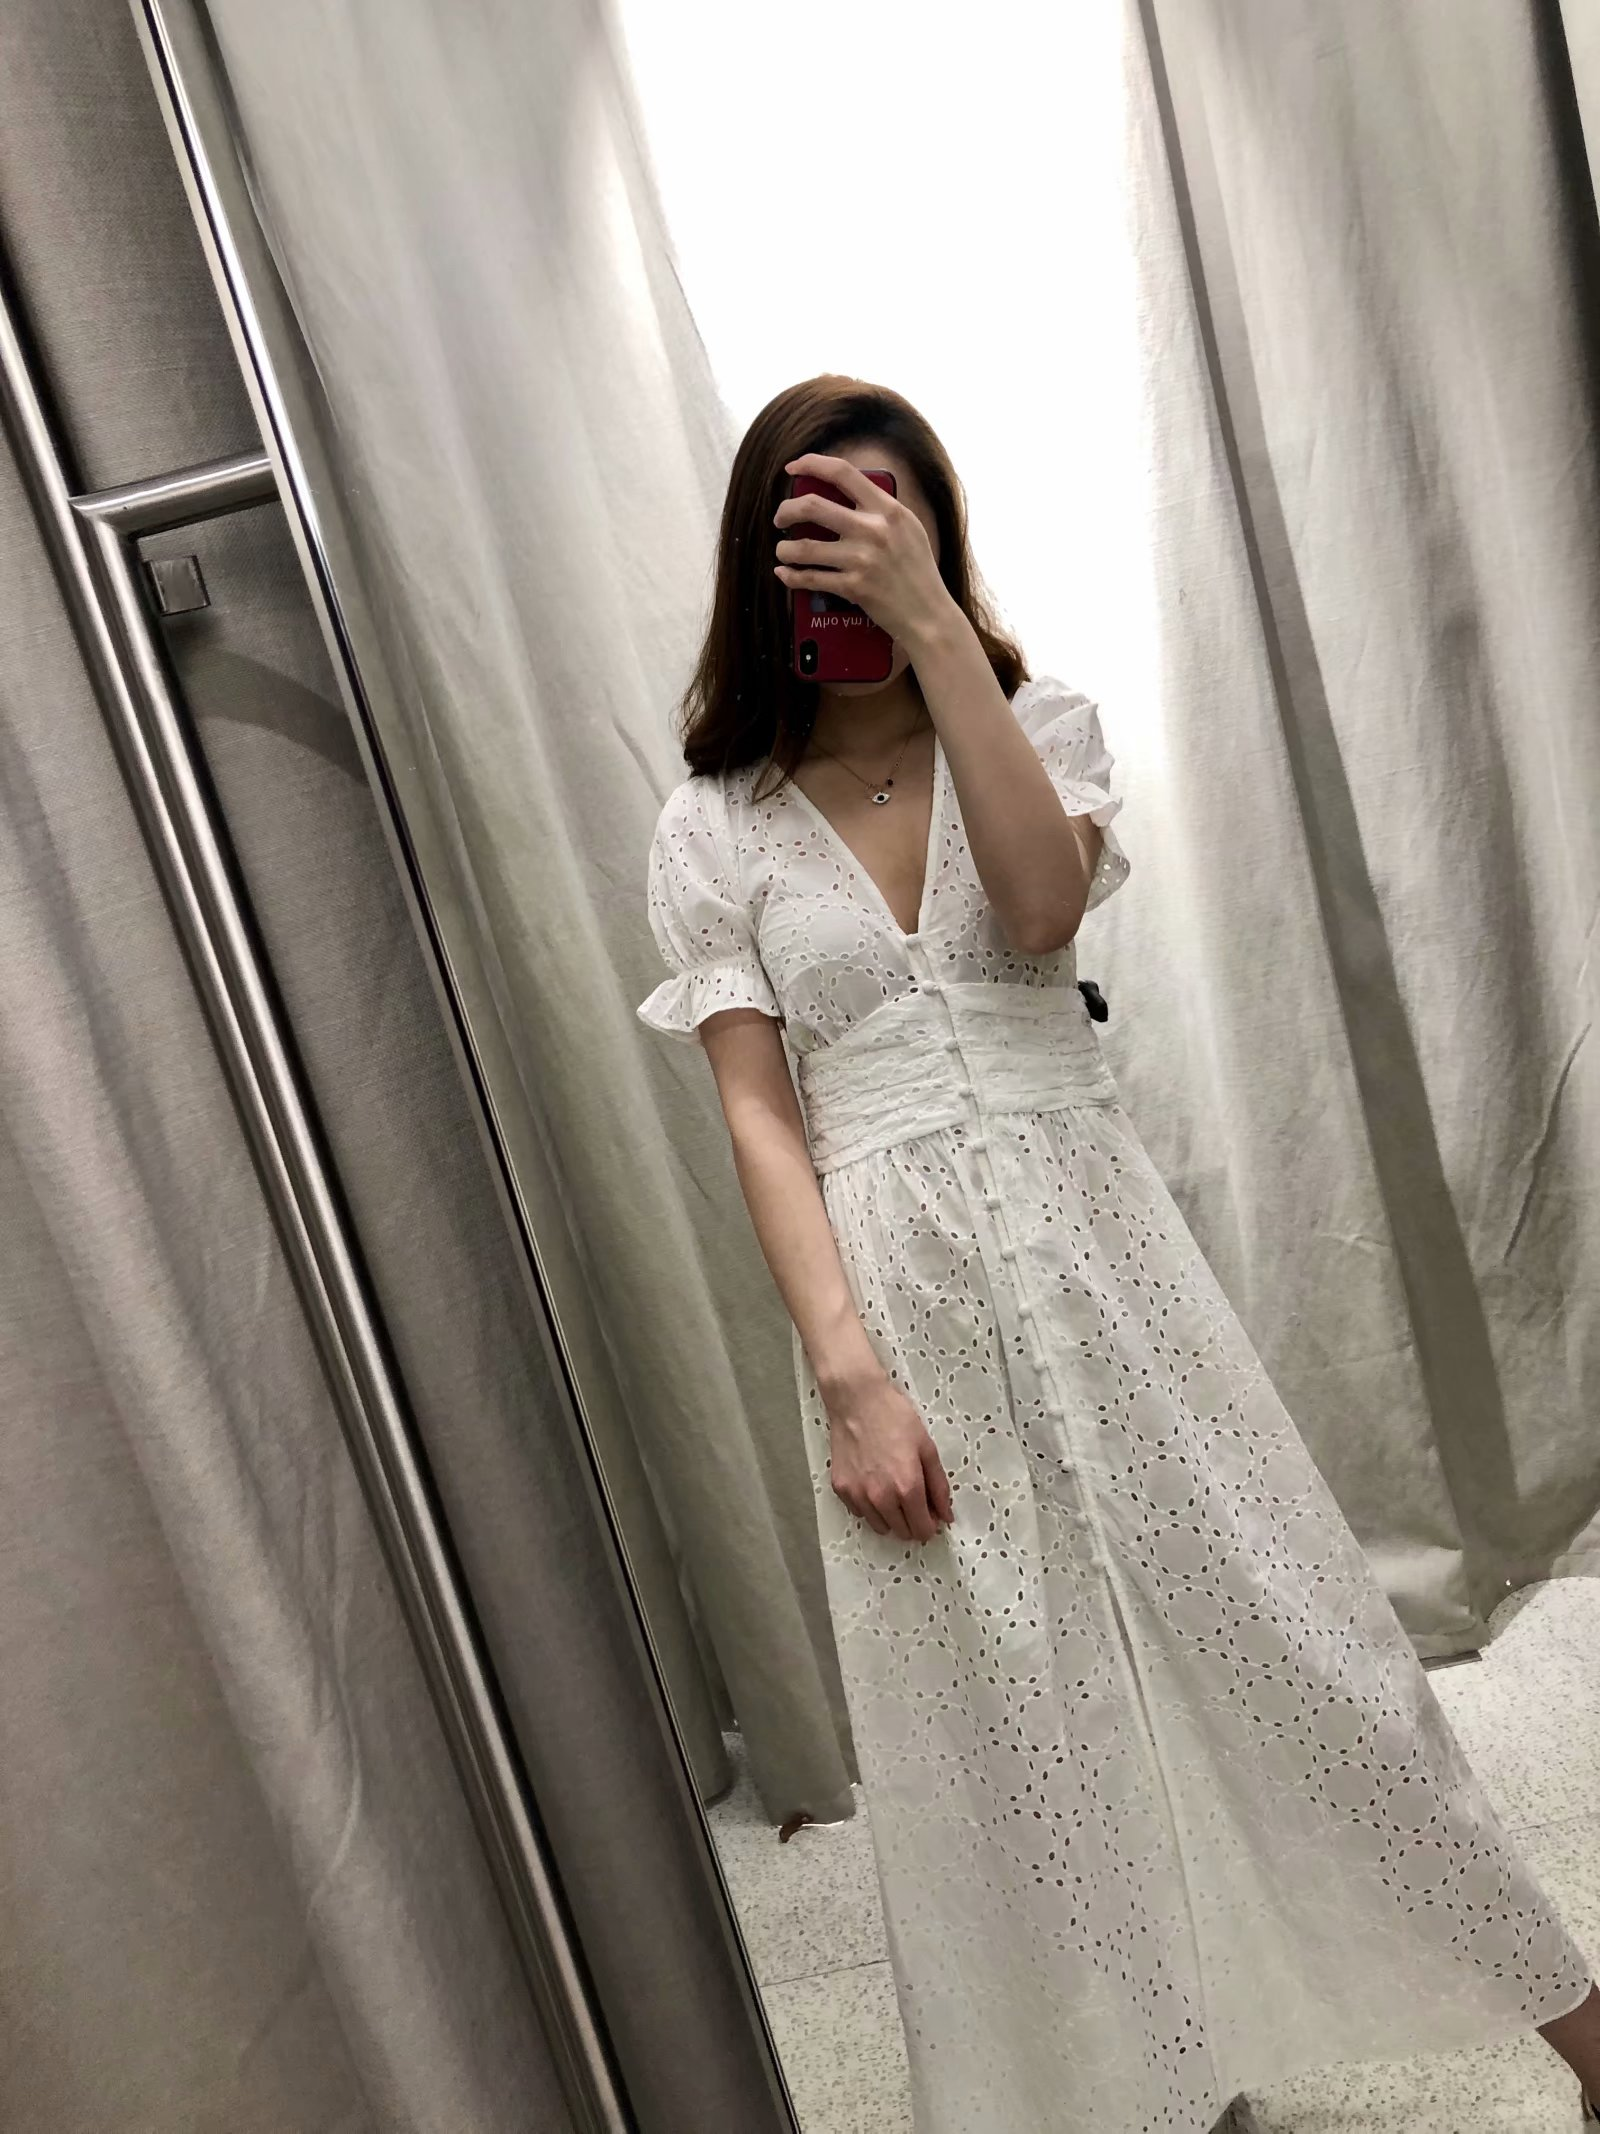 2019 Women s New White Openwork Embroidered Long Dress